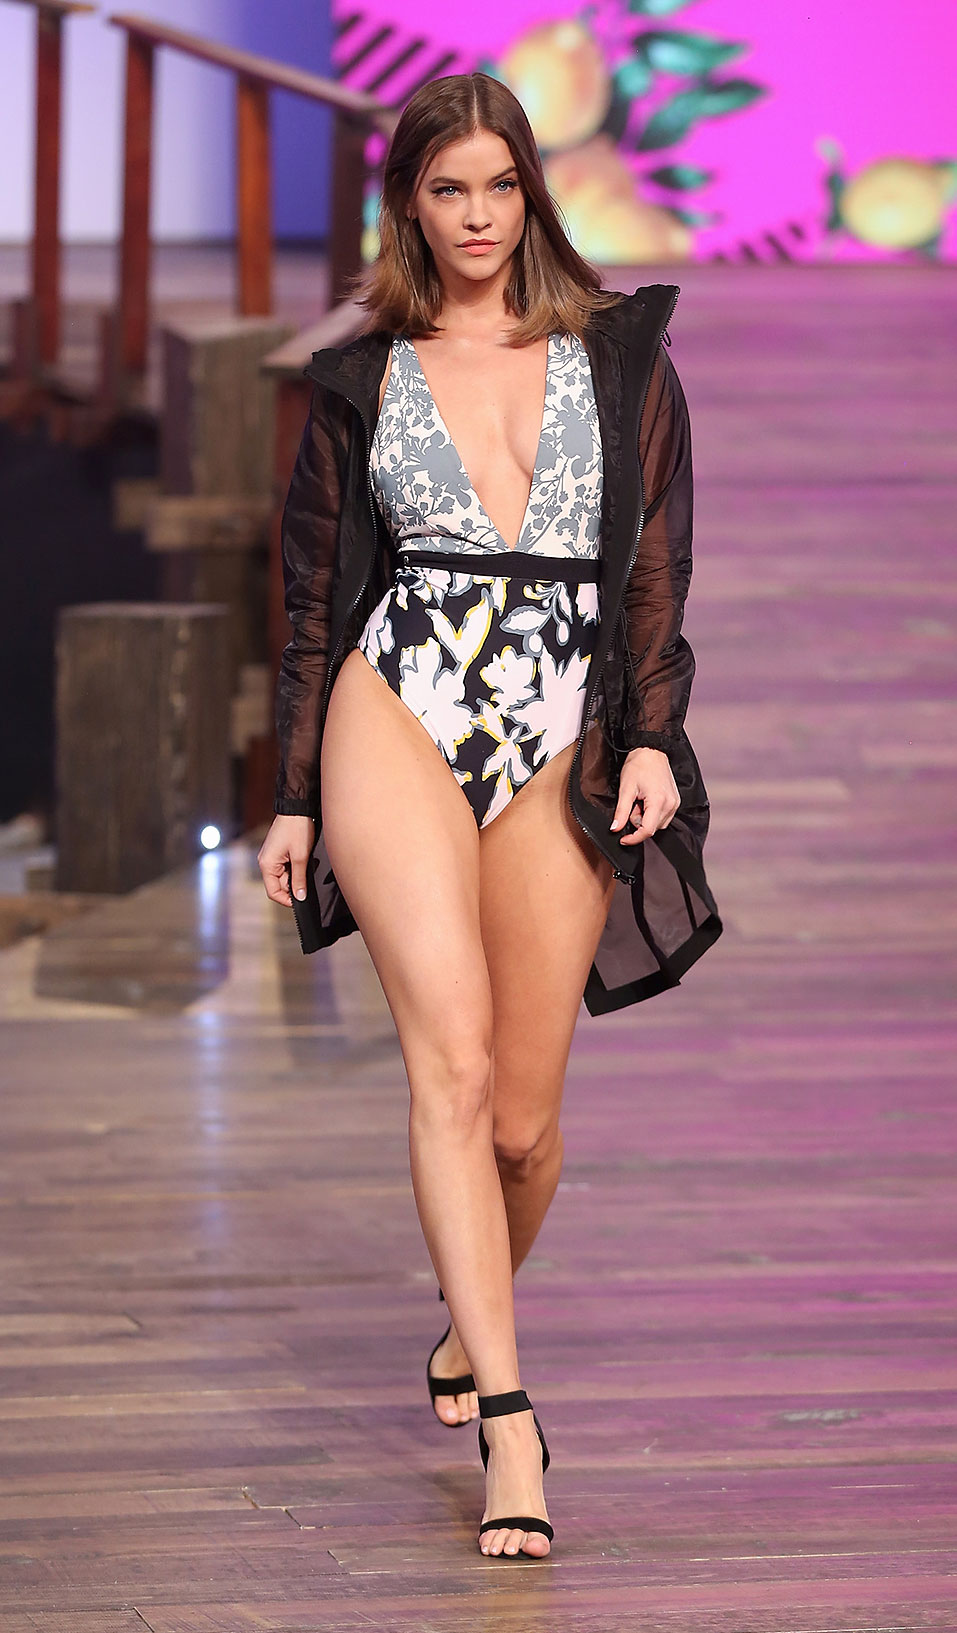 Barbara Palvin Runway - Model Barbara Palvin walks the runway during the Liverpool Fashion Fest Spring/ Summer 2019 at Quarry Studios on March 28, 2019 in Mexico City, Mexico.